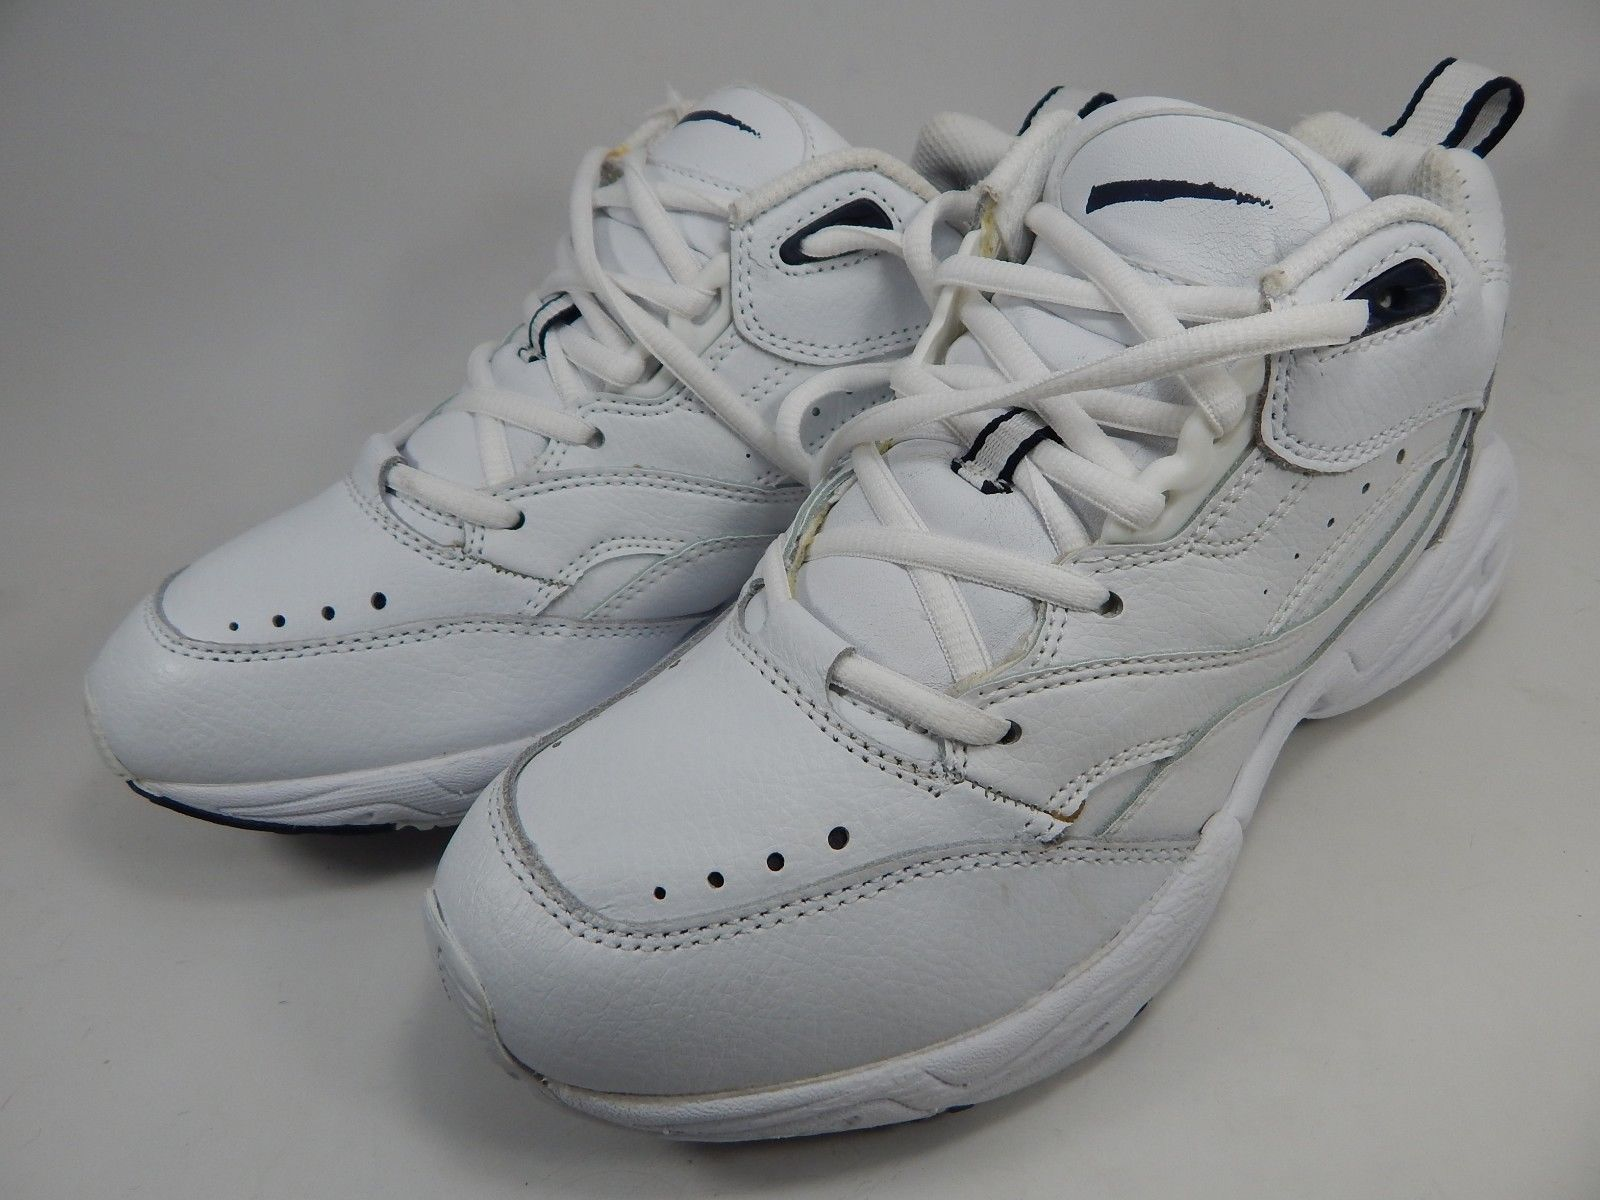 Cross Trekkers Men's Leather Basketball Shoes Size US 8 M (D) EU 41.5 White